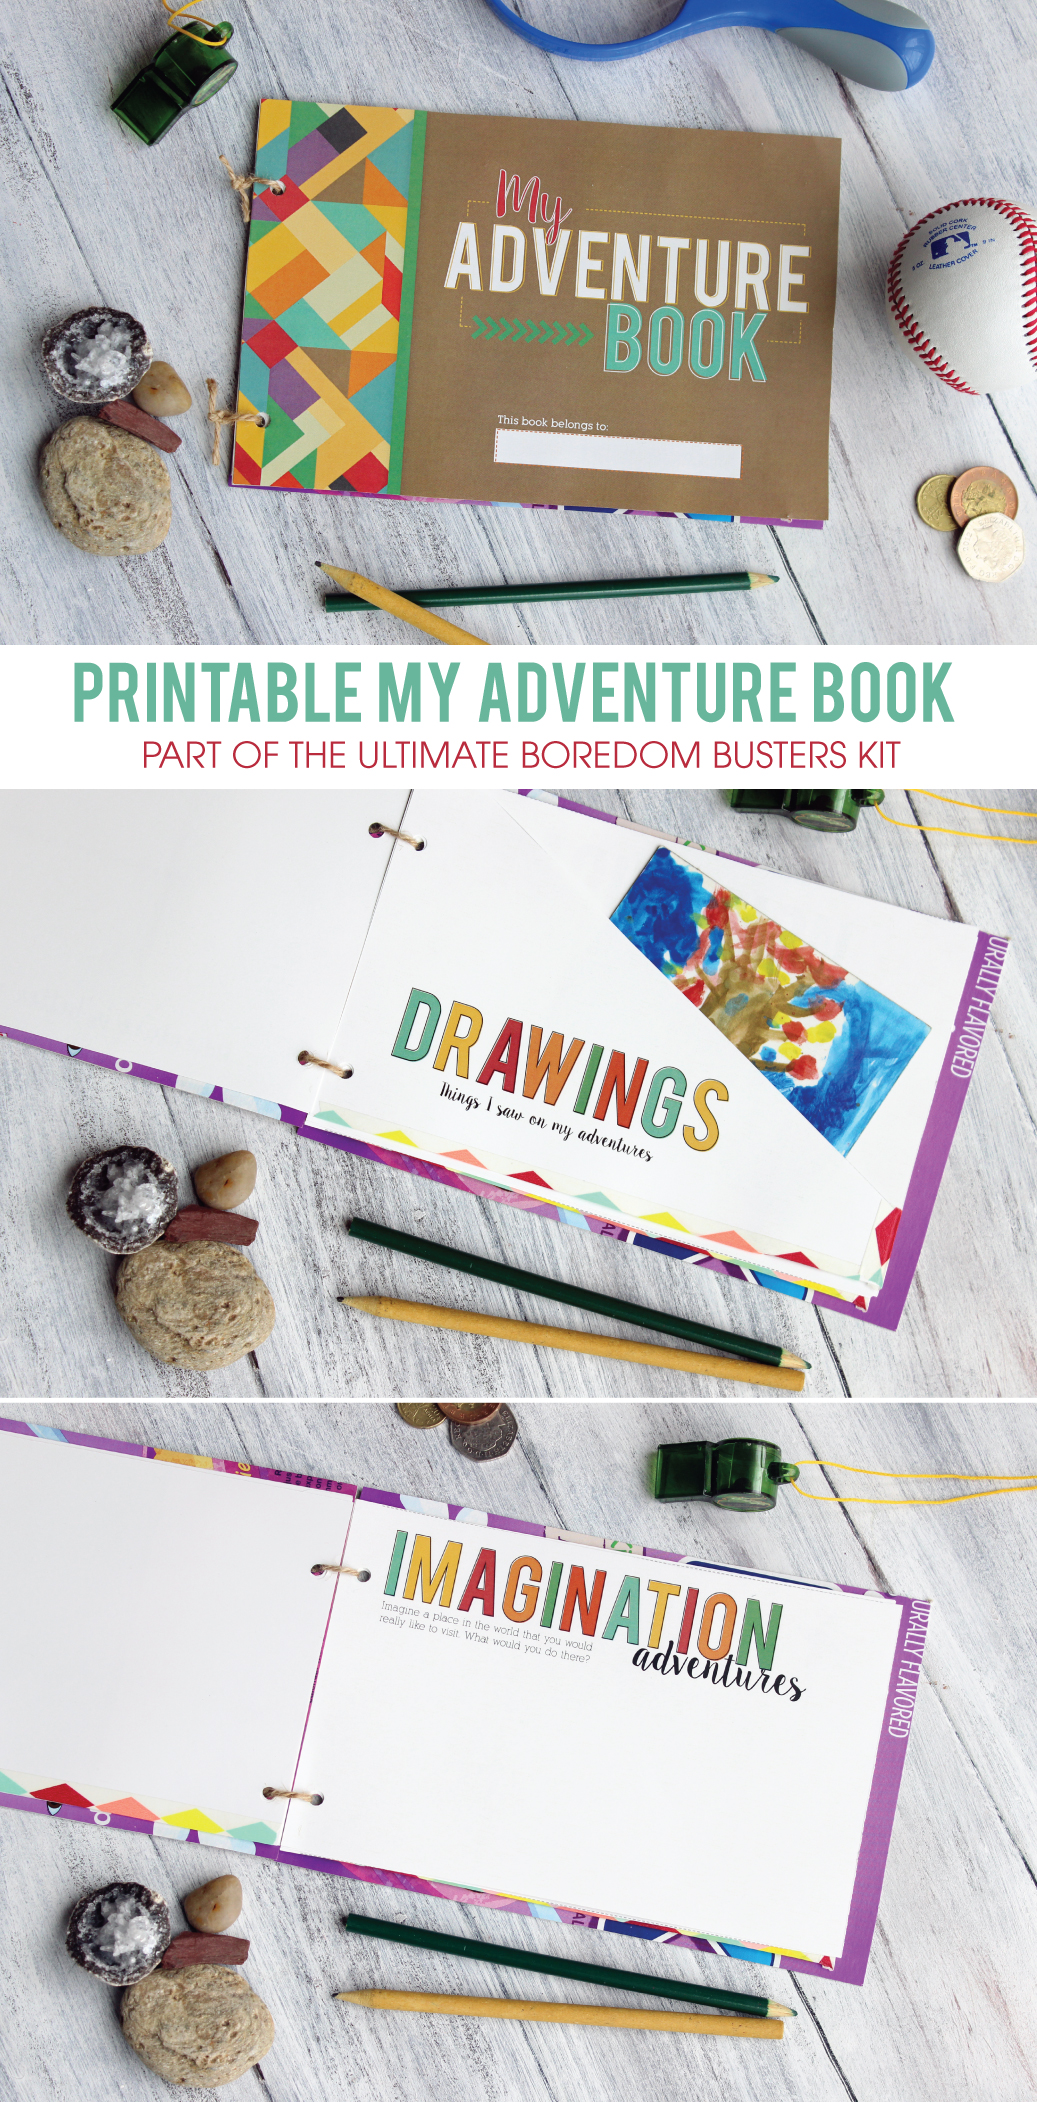 Printable My Adventure Book - included in the Ultimate Boredom Kit Printable Pack! Keep the kids busy this summer with these fun and educational activities!